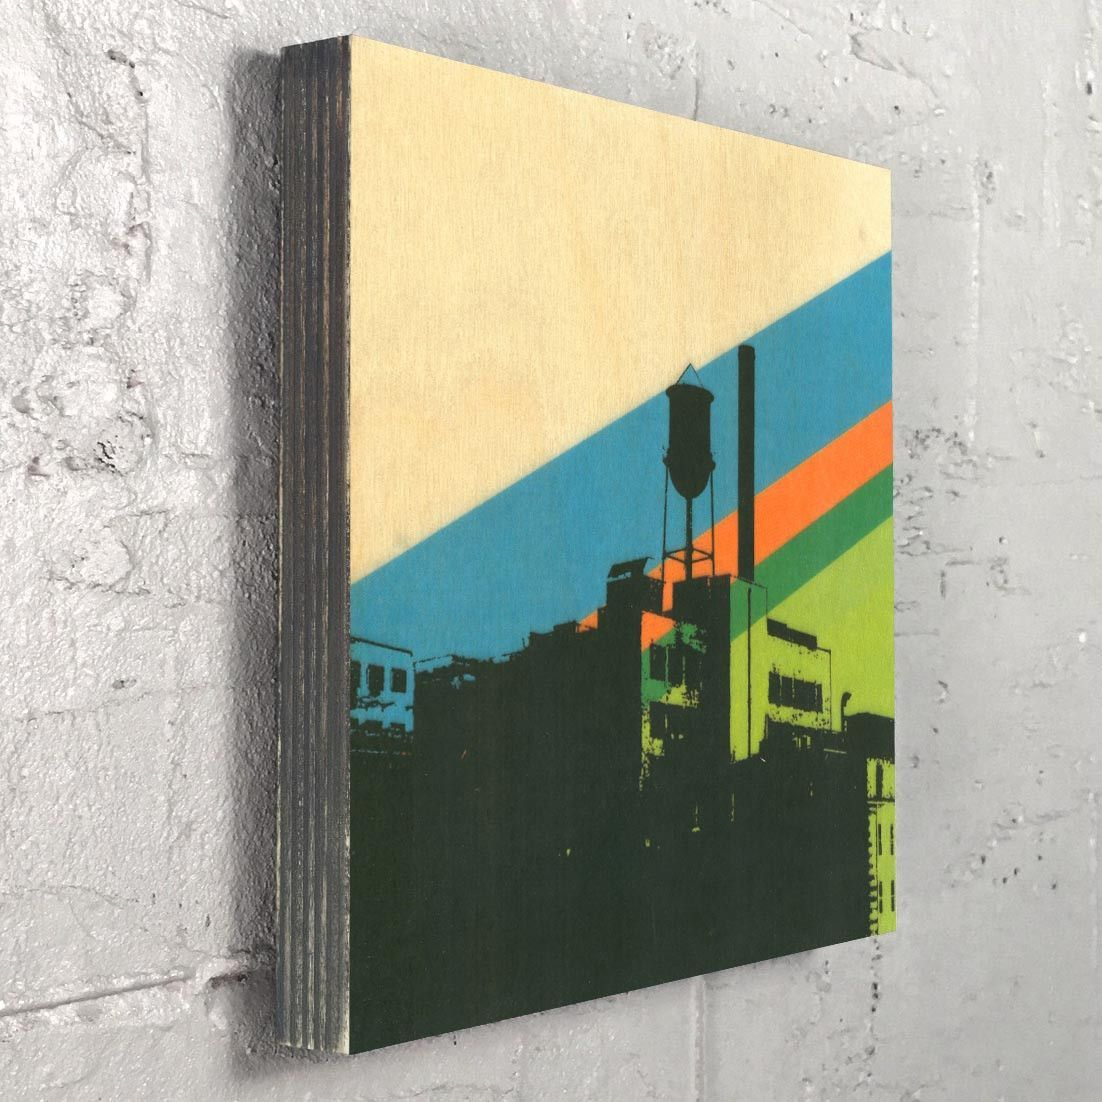 Water Tower Wall Art - Urban Decor | Products, Graphics and Decor